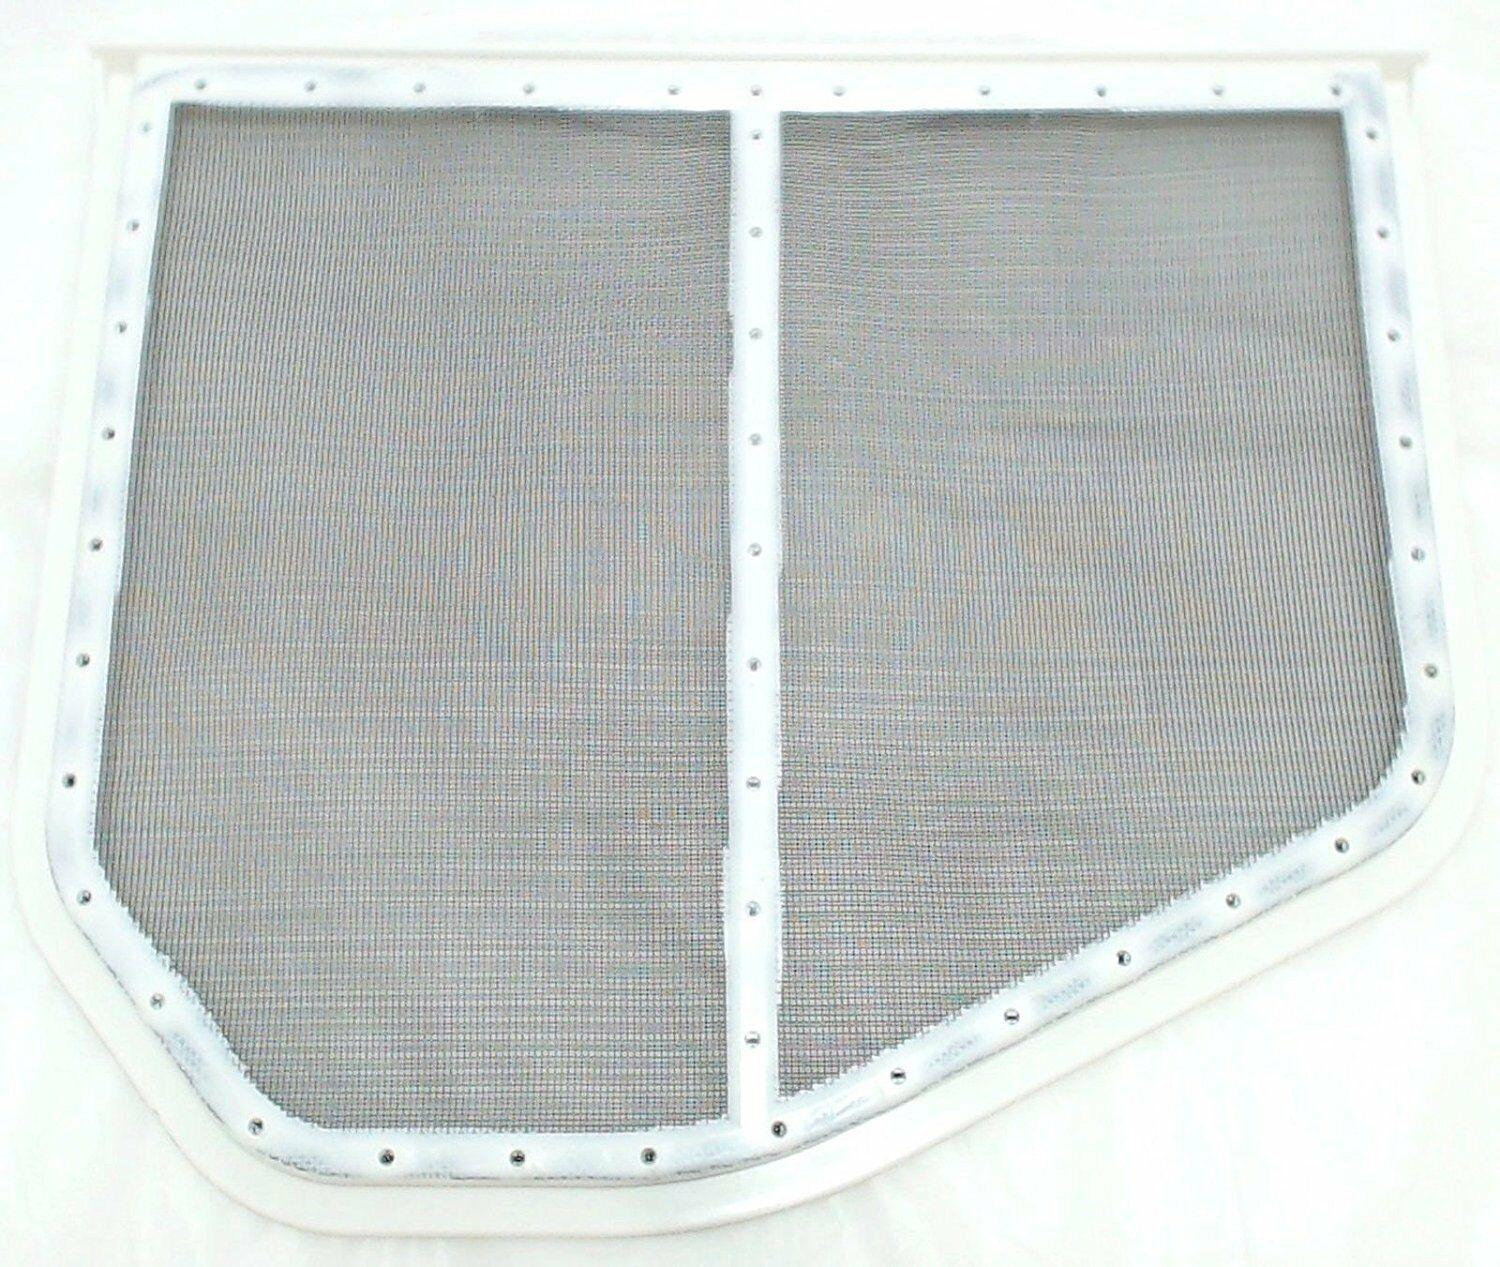 Dryer Lint Screen Front Load Kenmore Maytag Whirlpool Duet